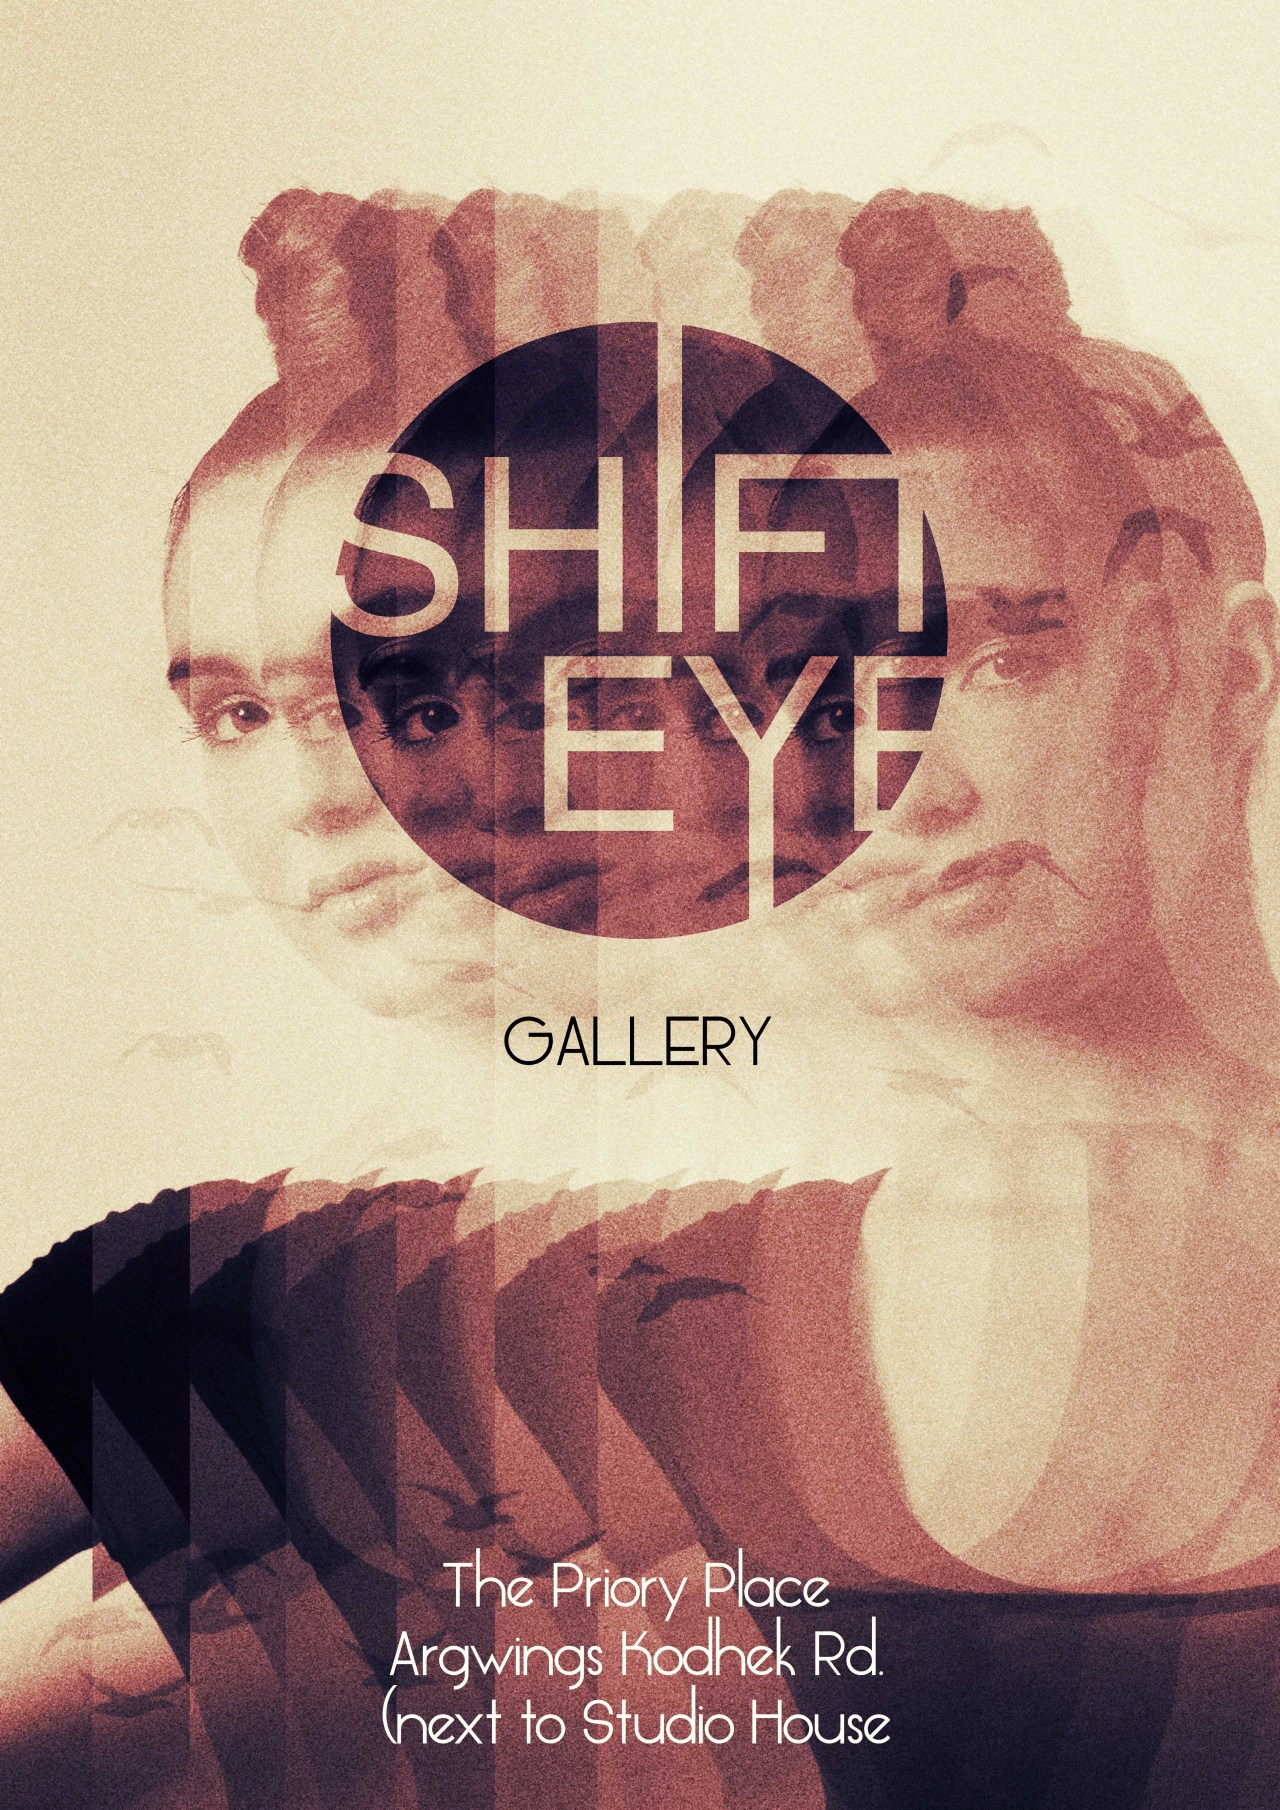 SHIFTEYE GALLERY coming soon! www.facebook.com/shifteyegallery Follow us on twitter @shifteyegallery for more updates